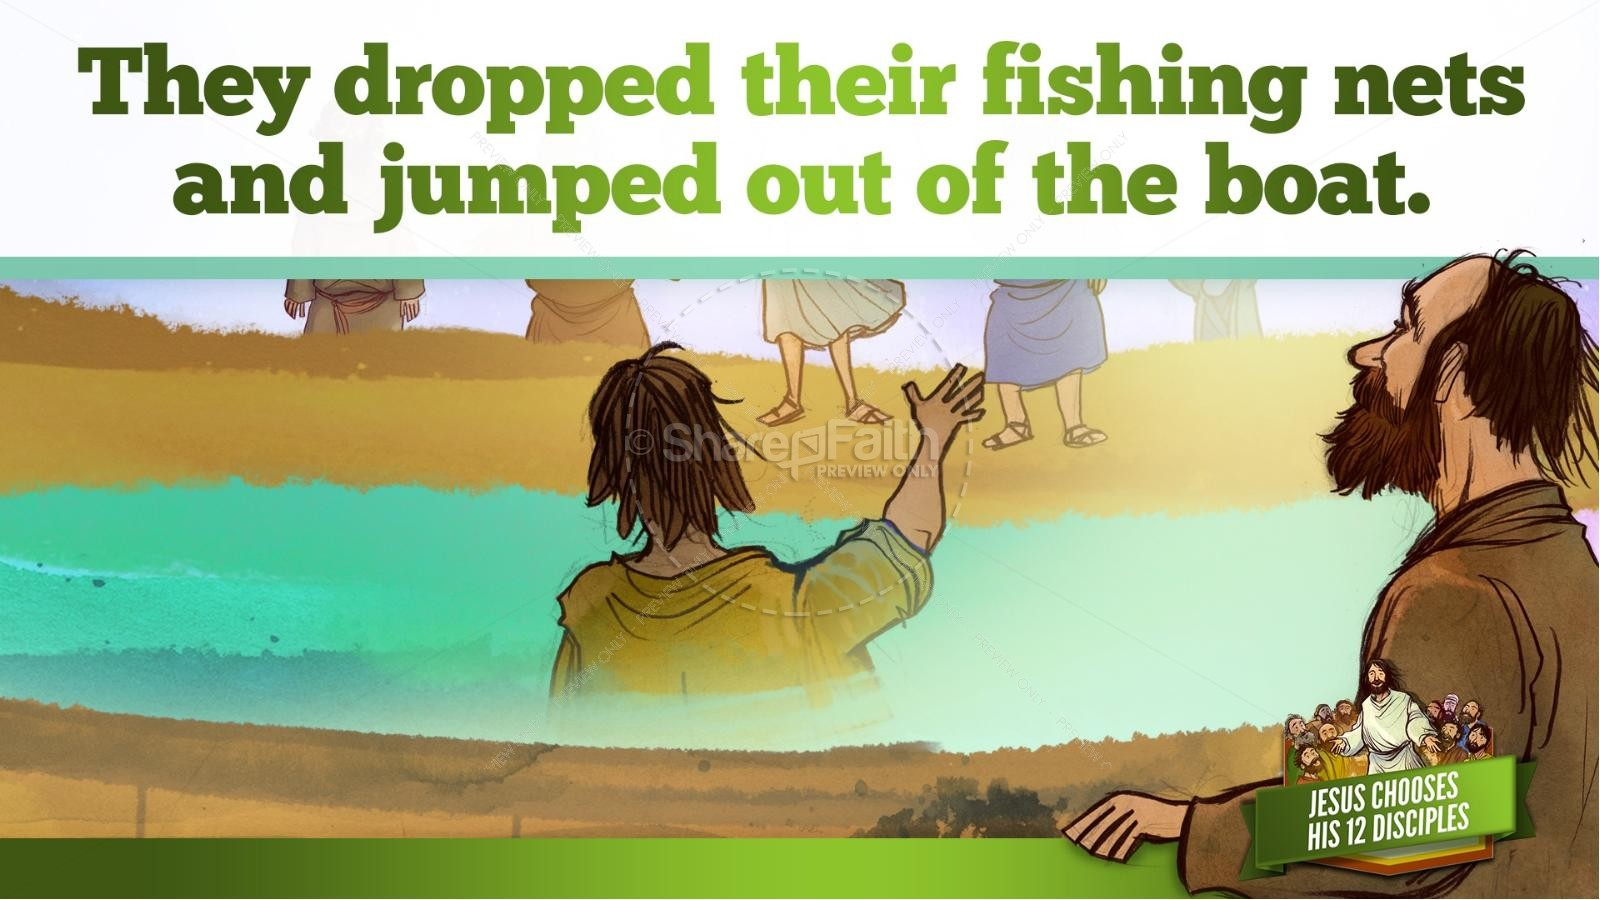 Jesus Chooses His 12 Disciples Kids Bible Story | slide 23